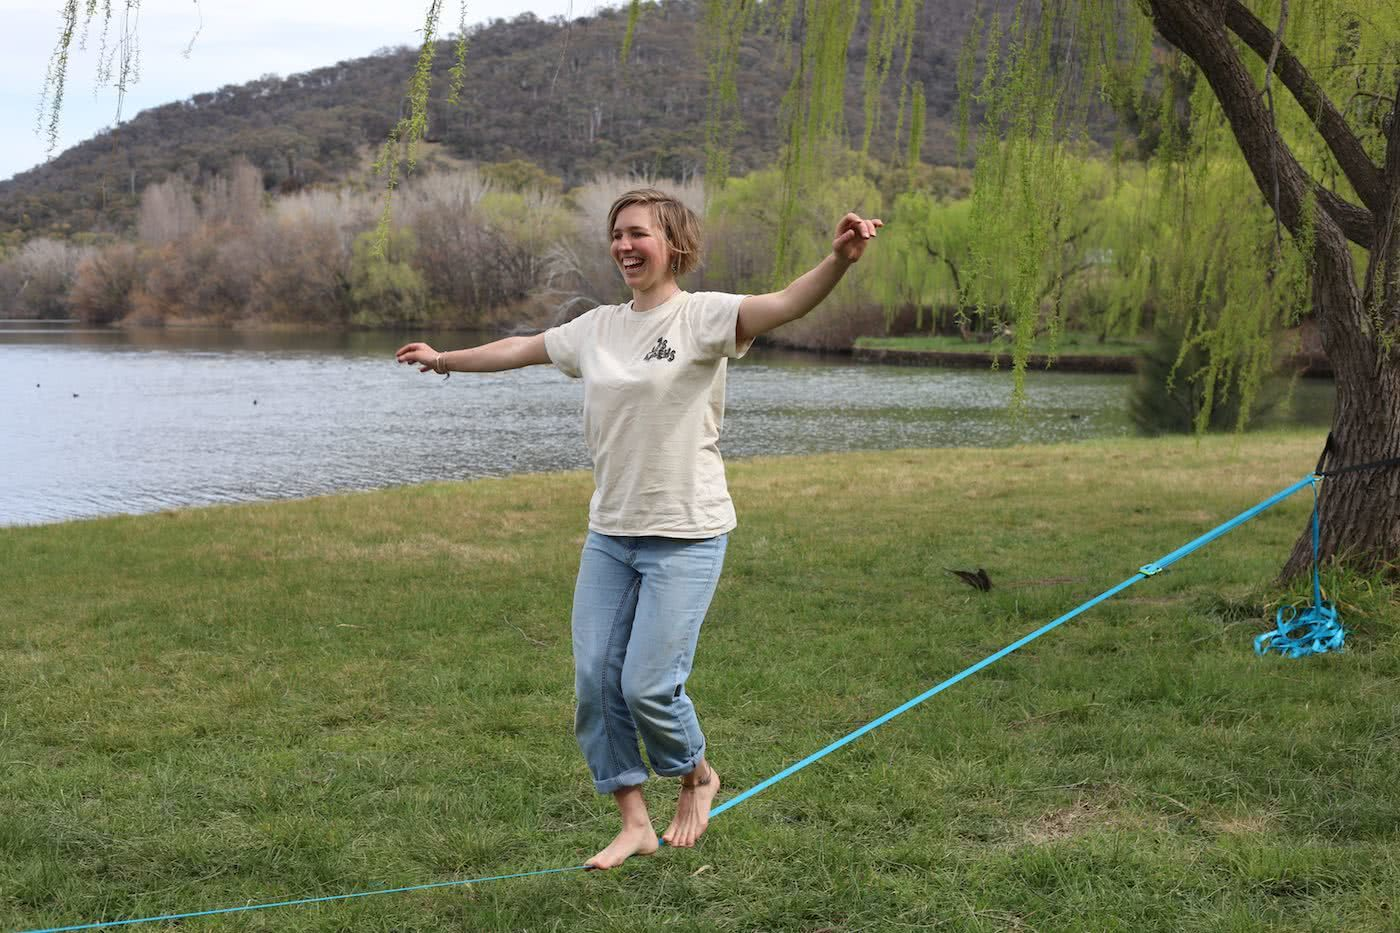 How To Squeeze More Outdoors Time Into Your Workday by Mattie Gould Smiling and slacklining in Canberra